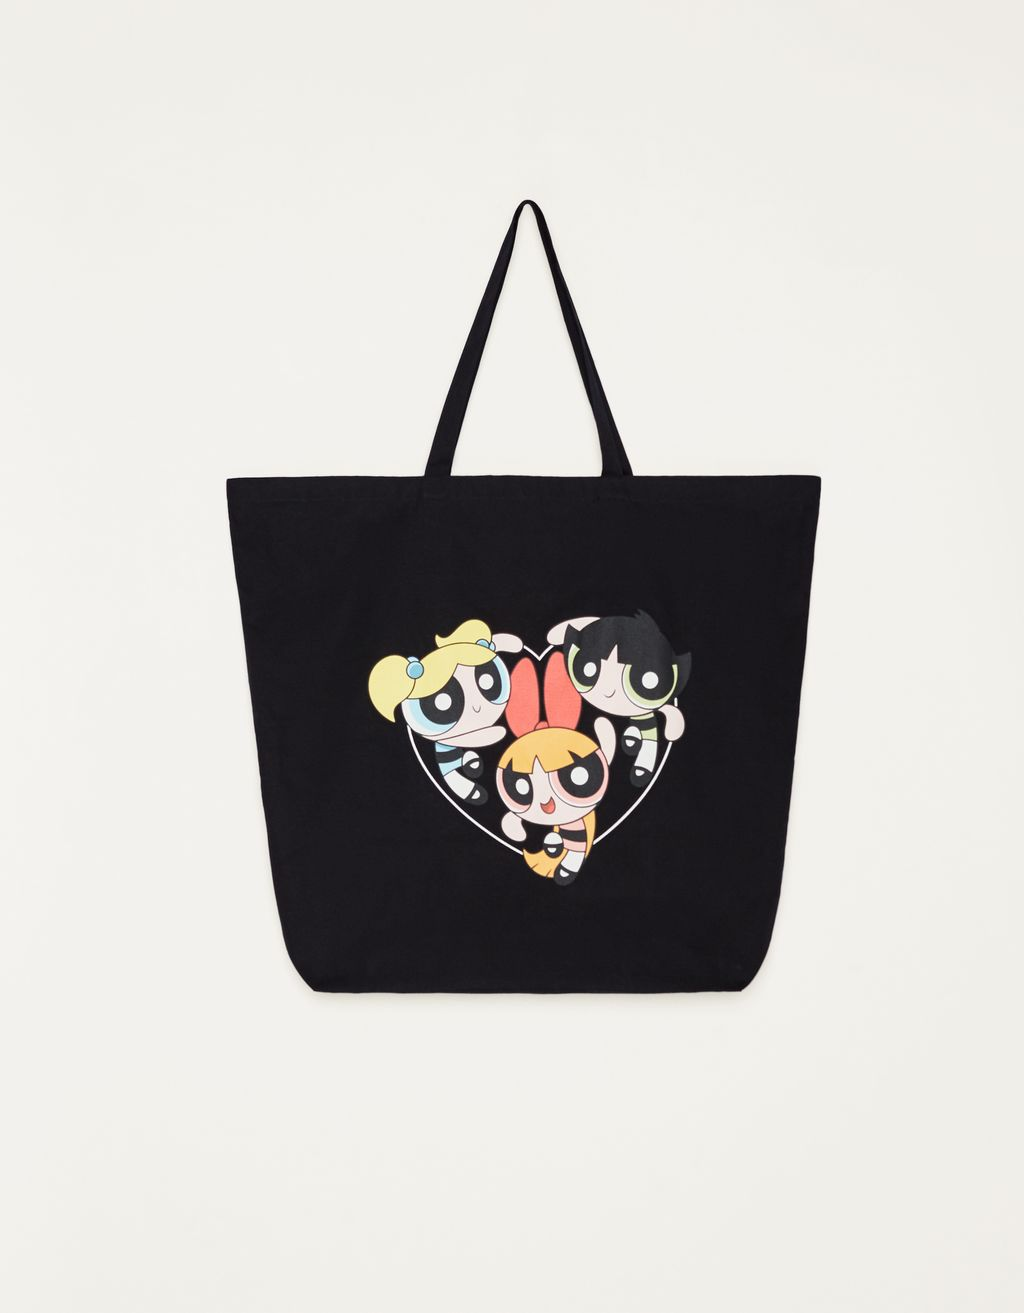 Borsa shopper Le Superchicche x Bershka